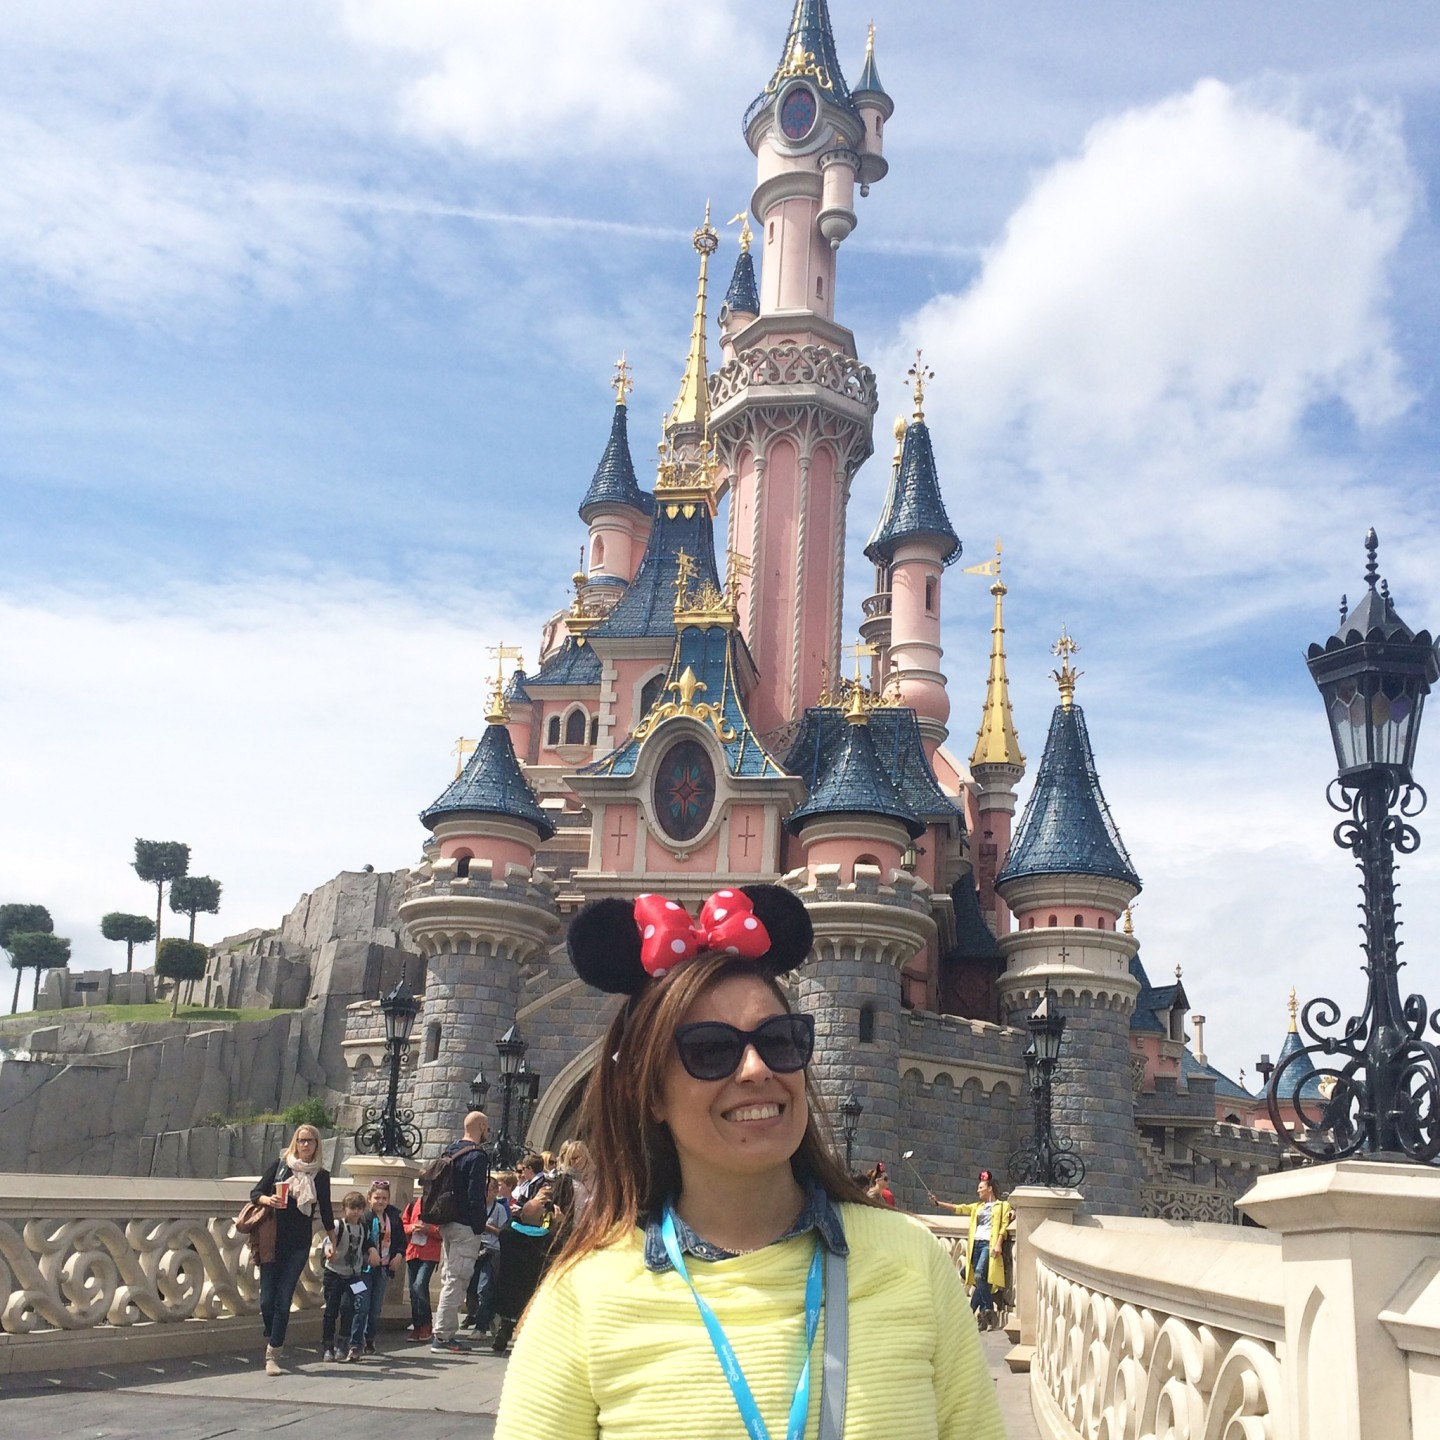 disneyland-paris-frozen-summer-2015-valentina-coco-fashion-blogger